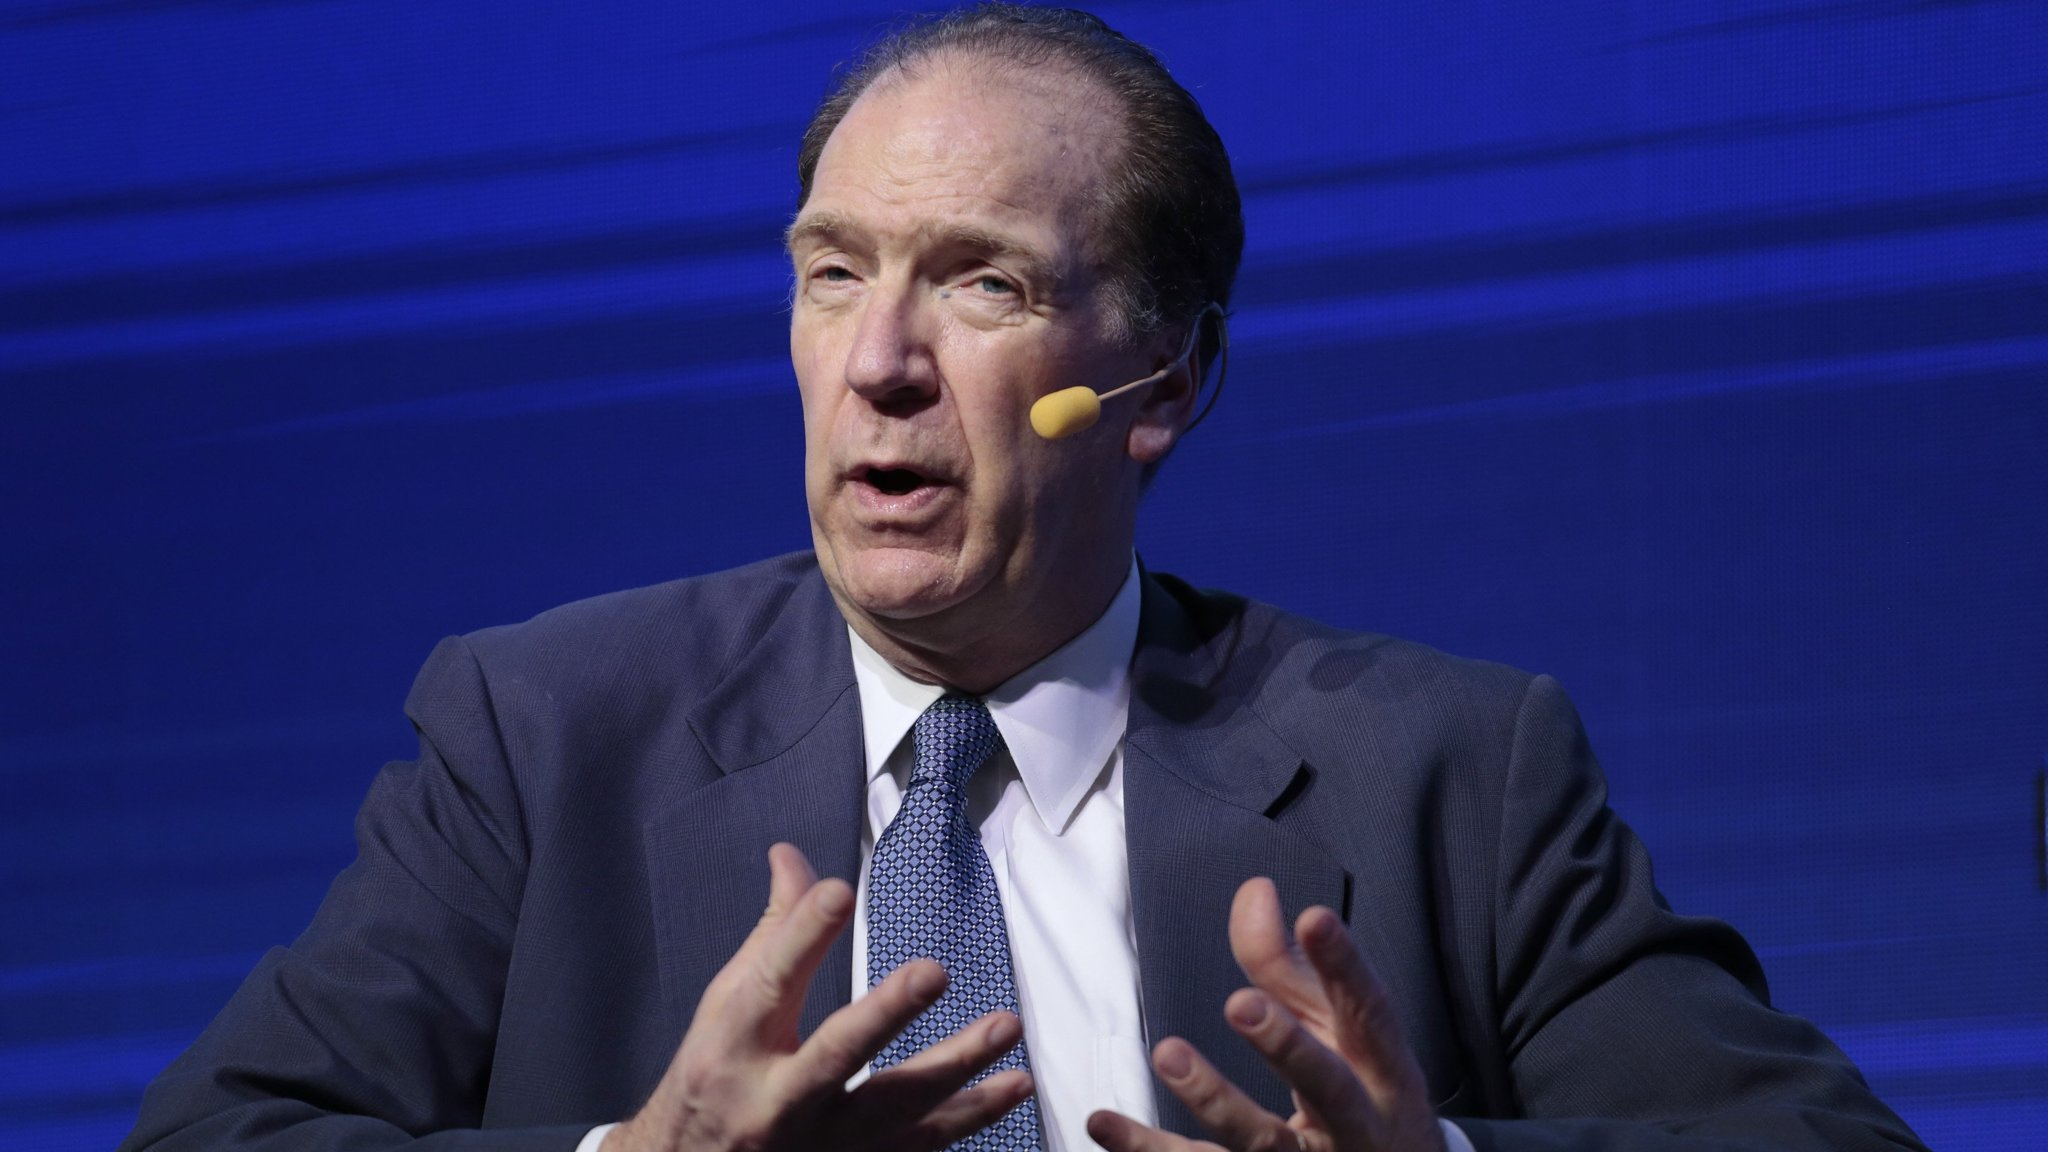 Donald Trump's likely World Bank pick is wary of globalism